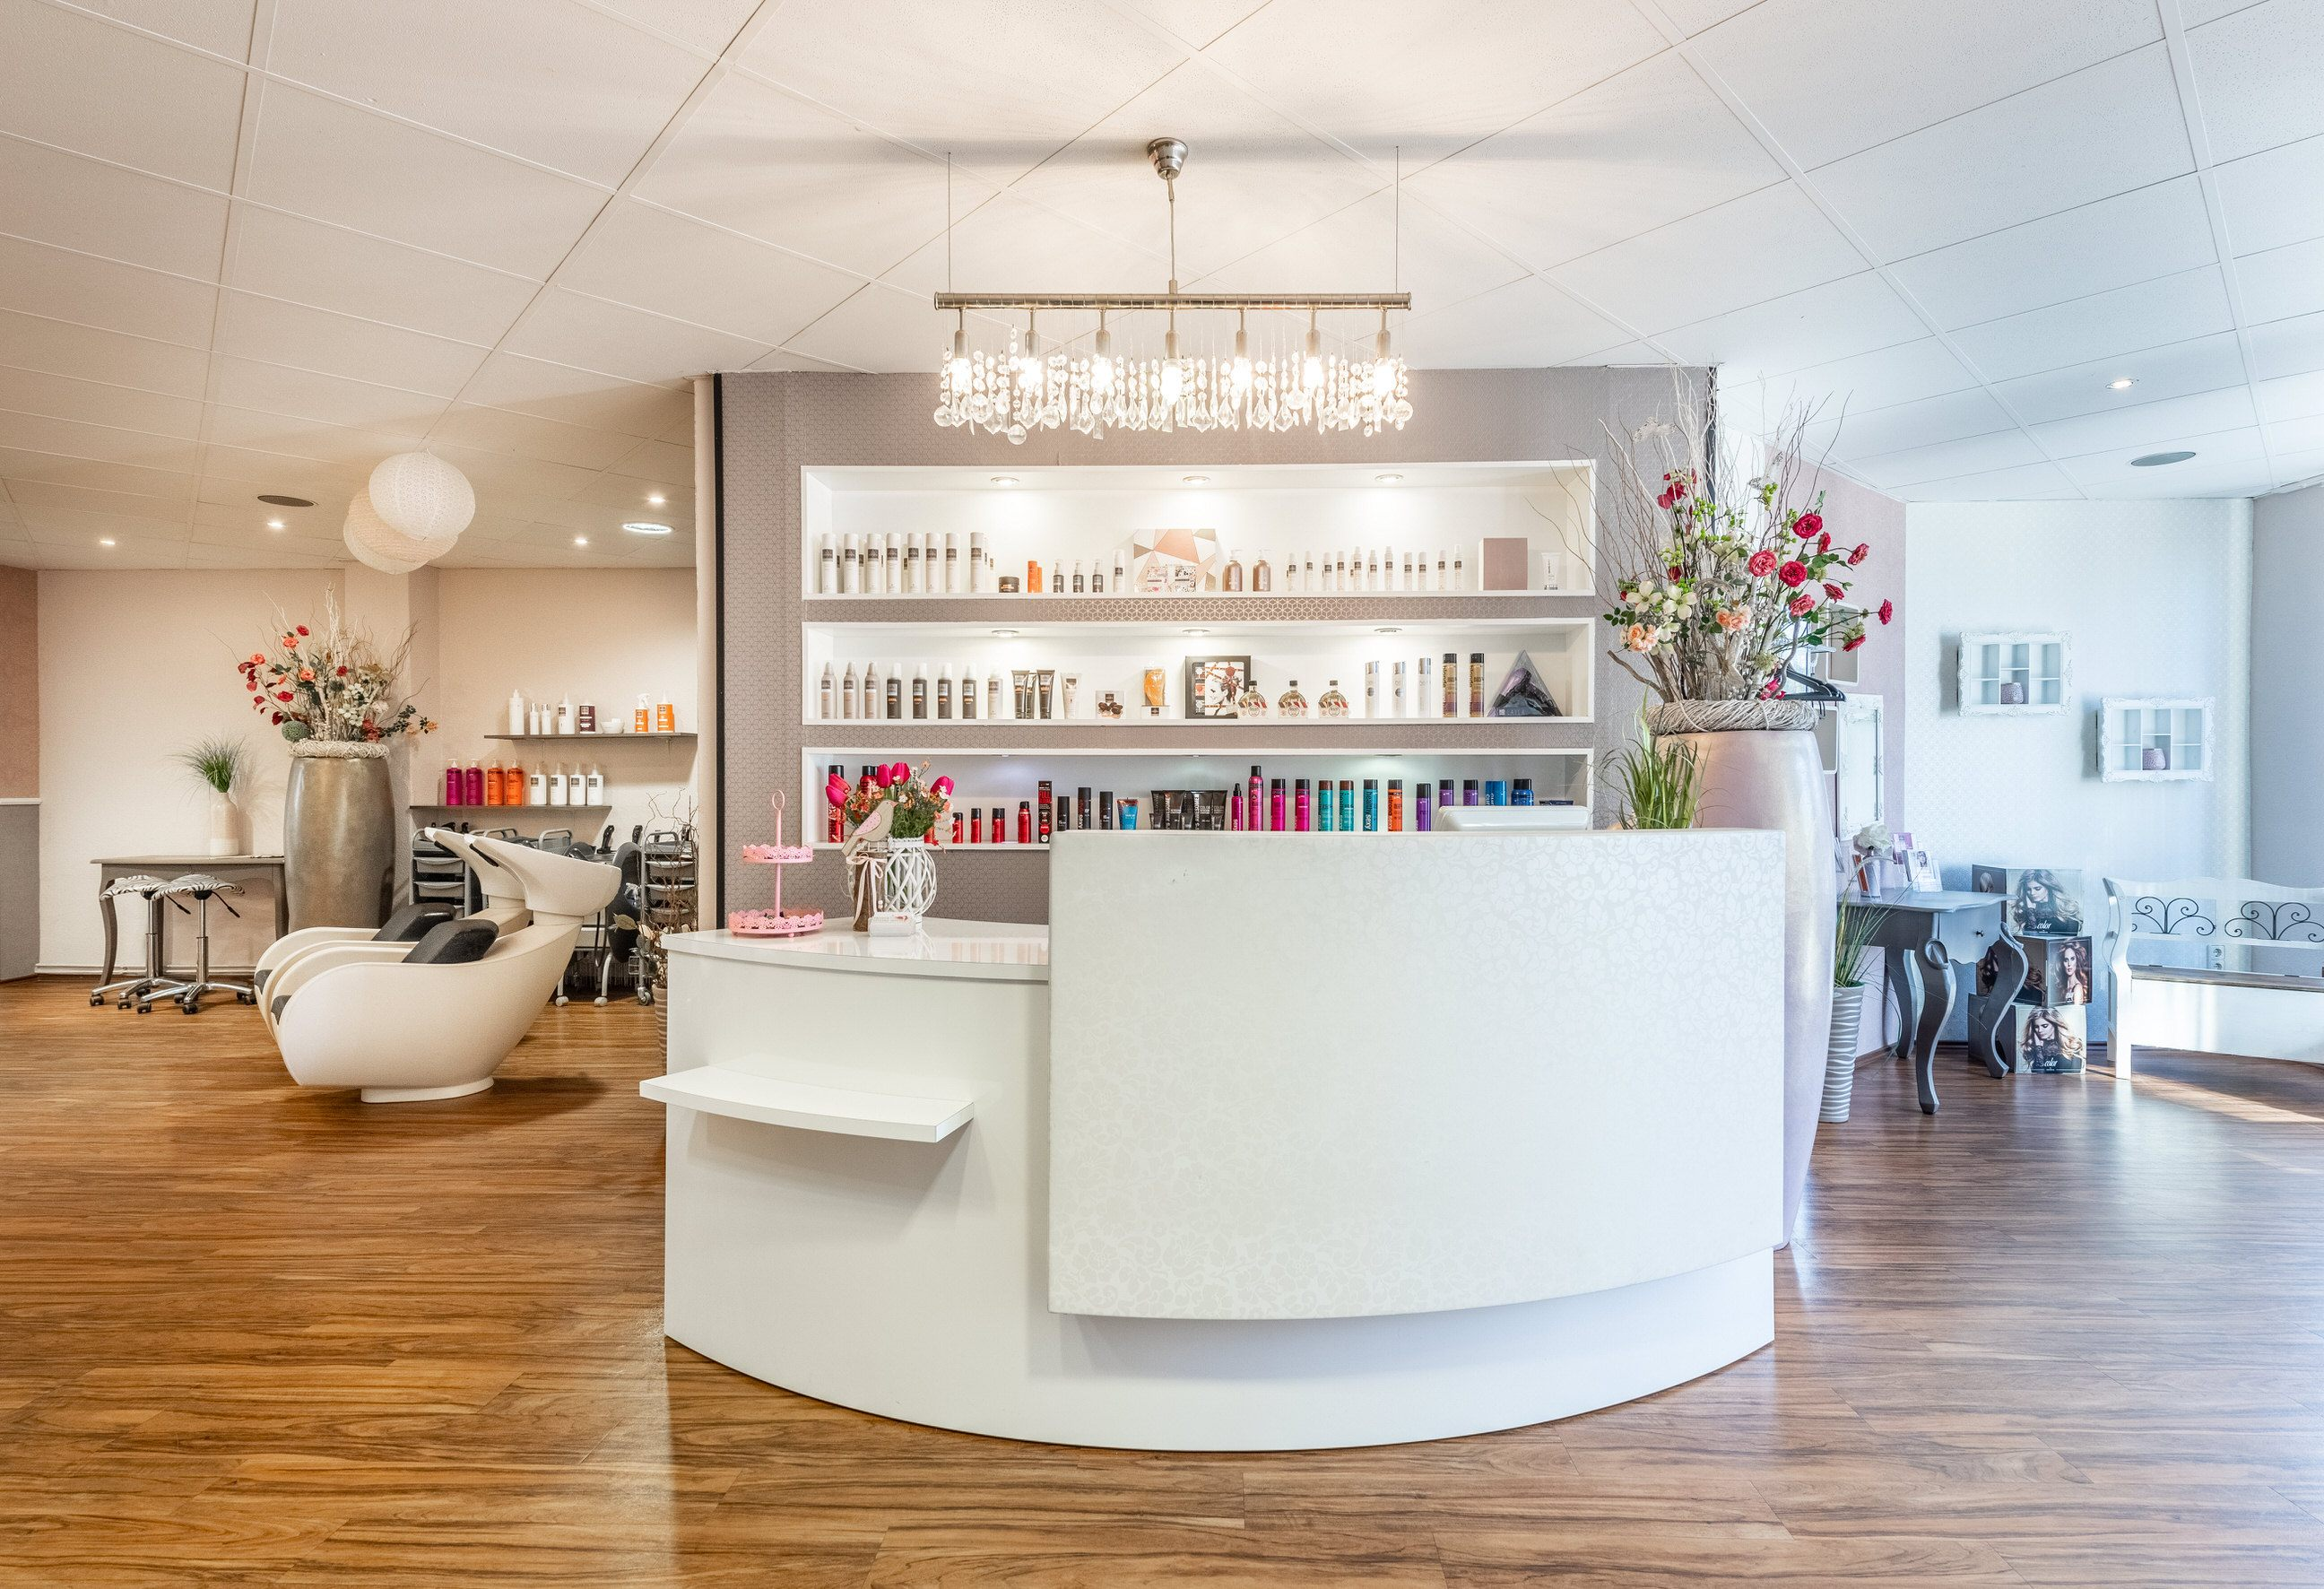 Friseur Styling House